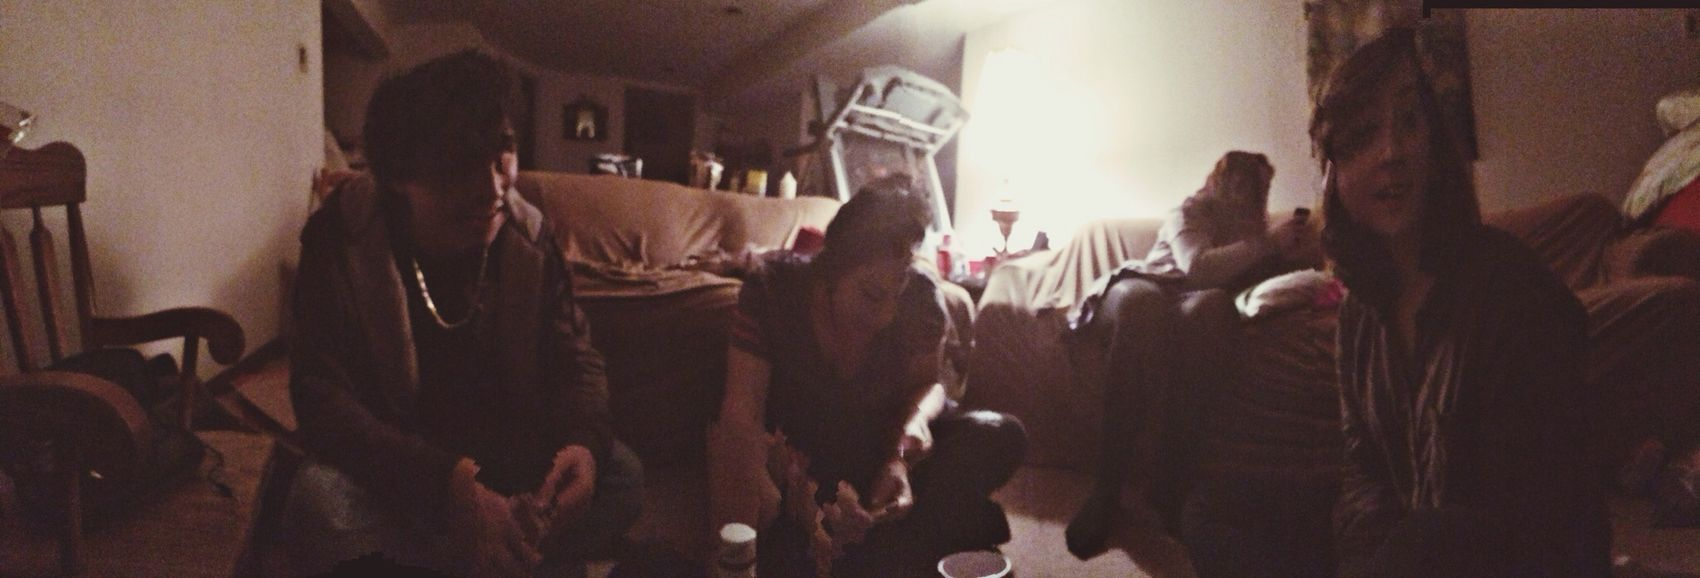 those Drunk New Years panoramas. your head is all Wonky dude